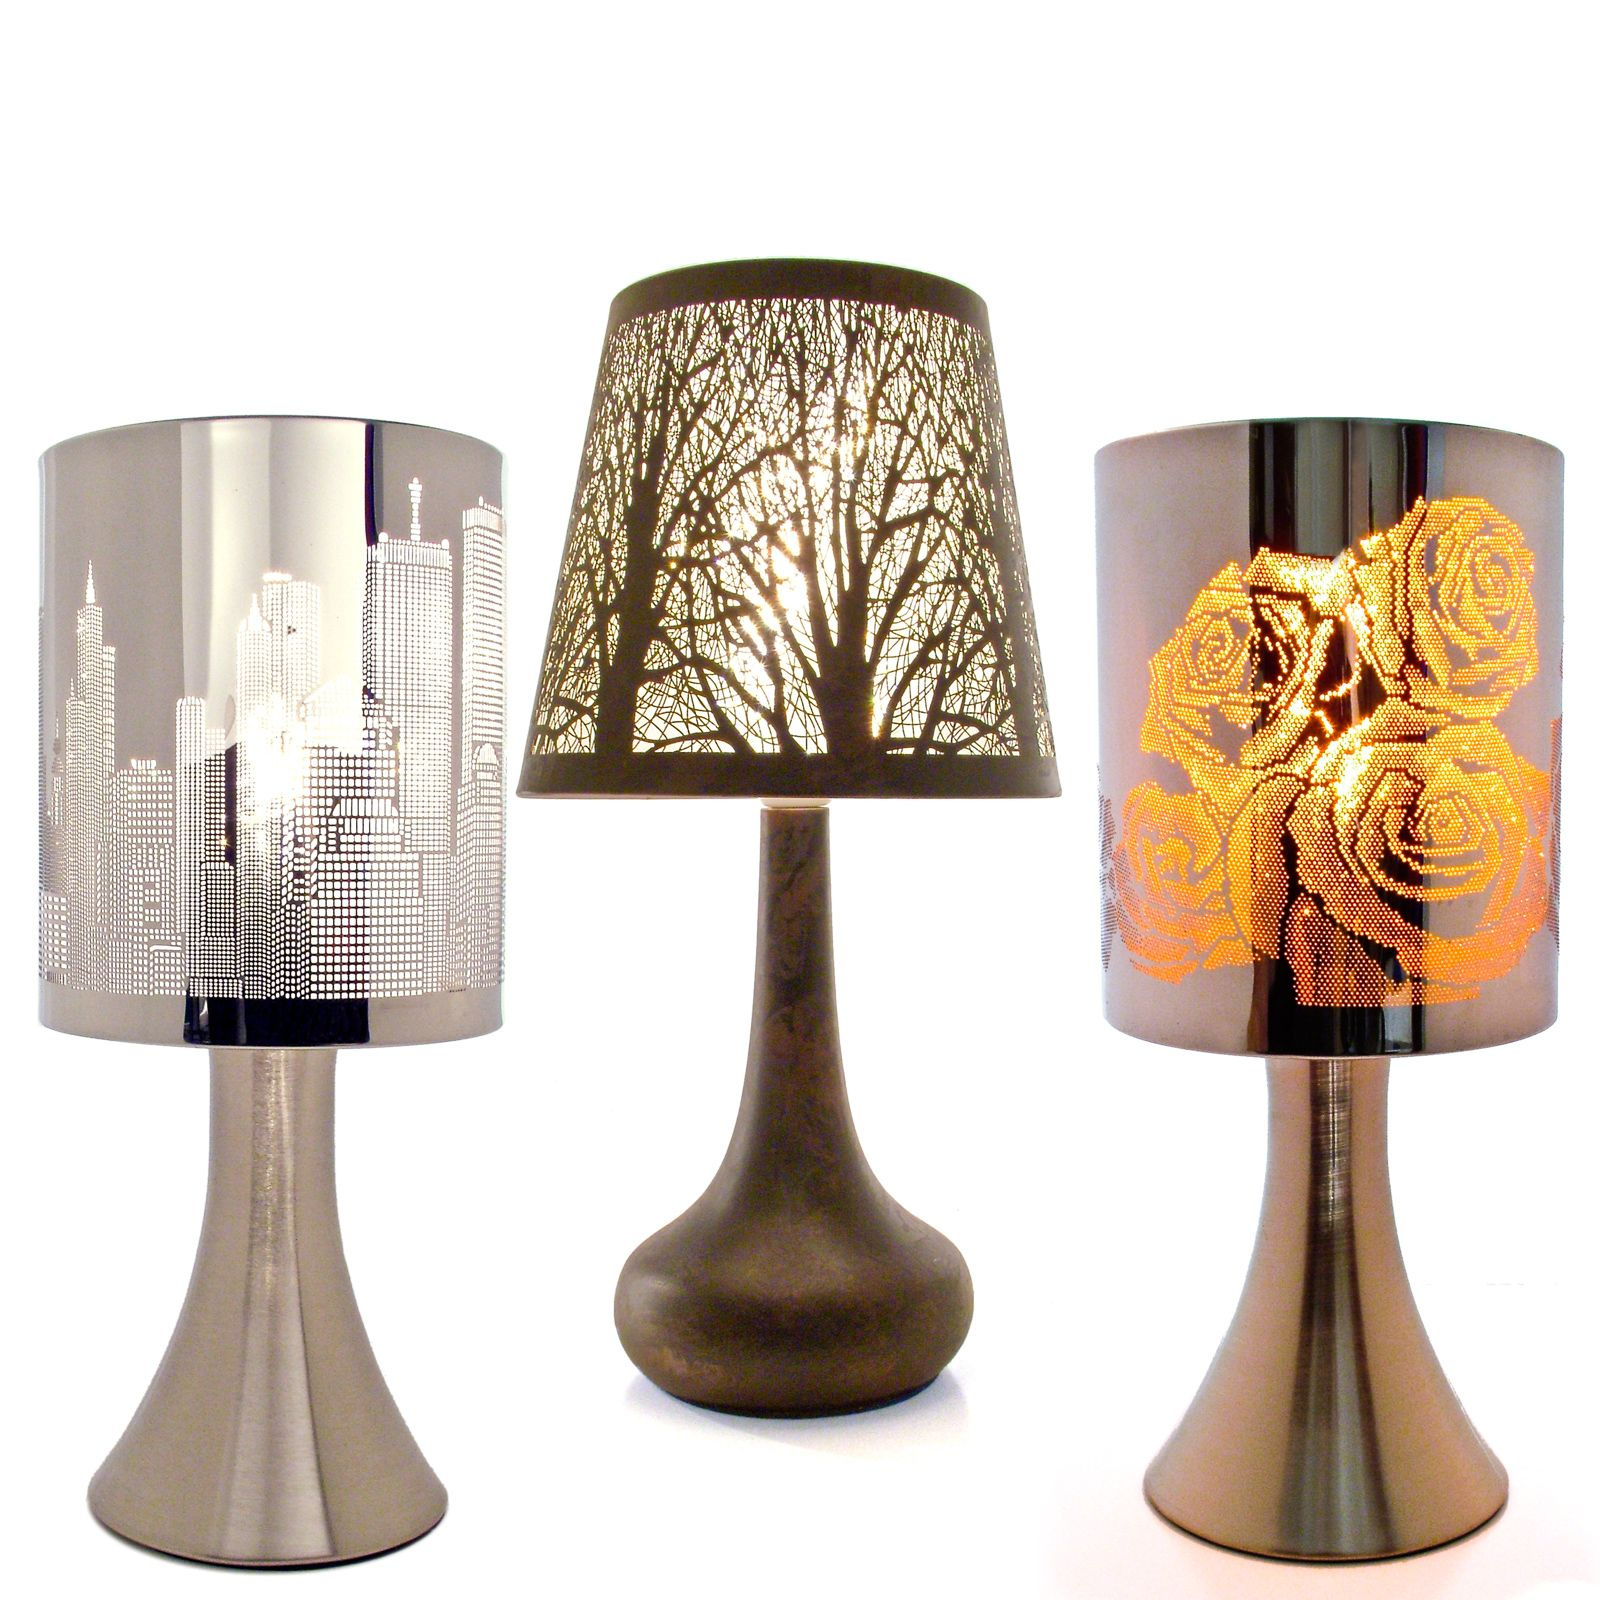 Stylish Bedside Lamps Best Bedside Lamp Touch Bedside Lamps Childrens Bedside